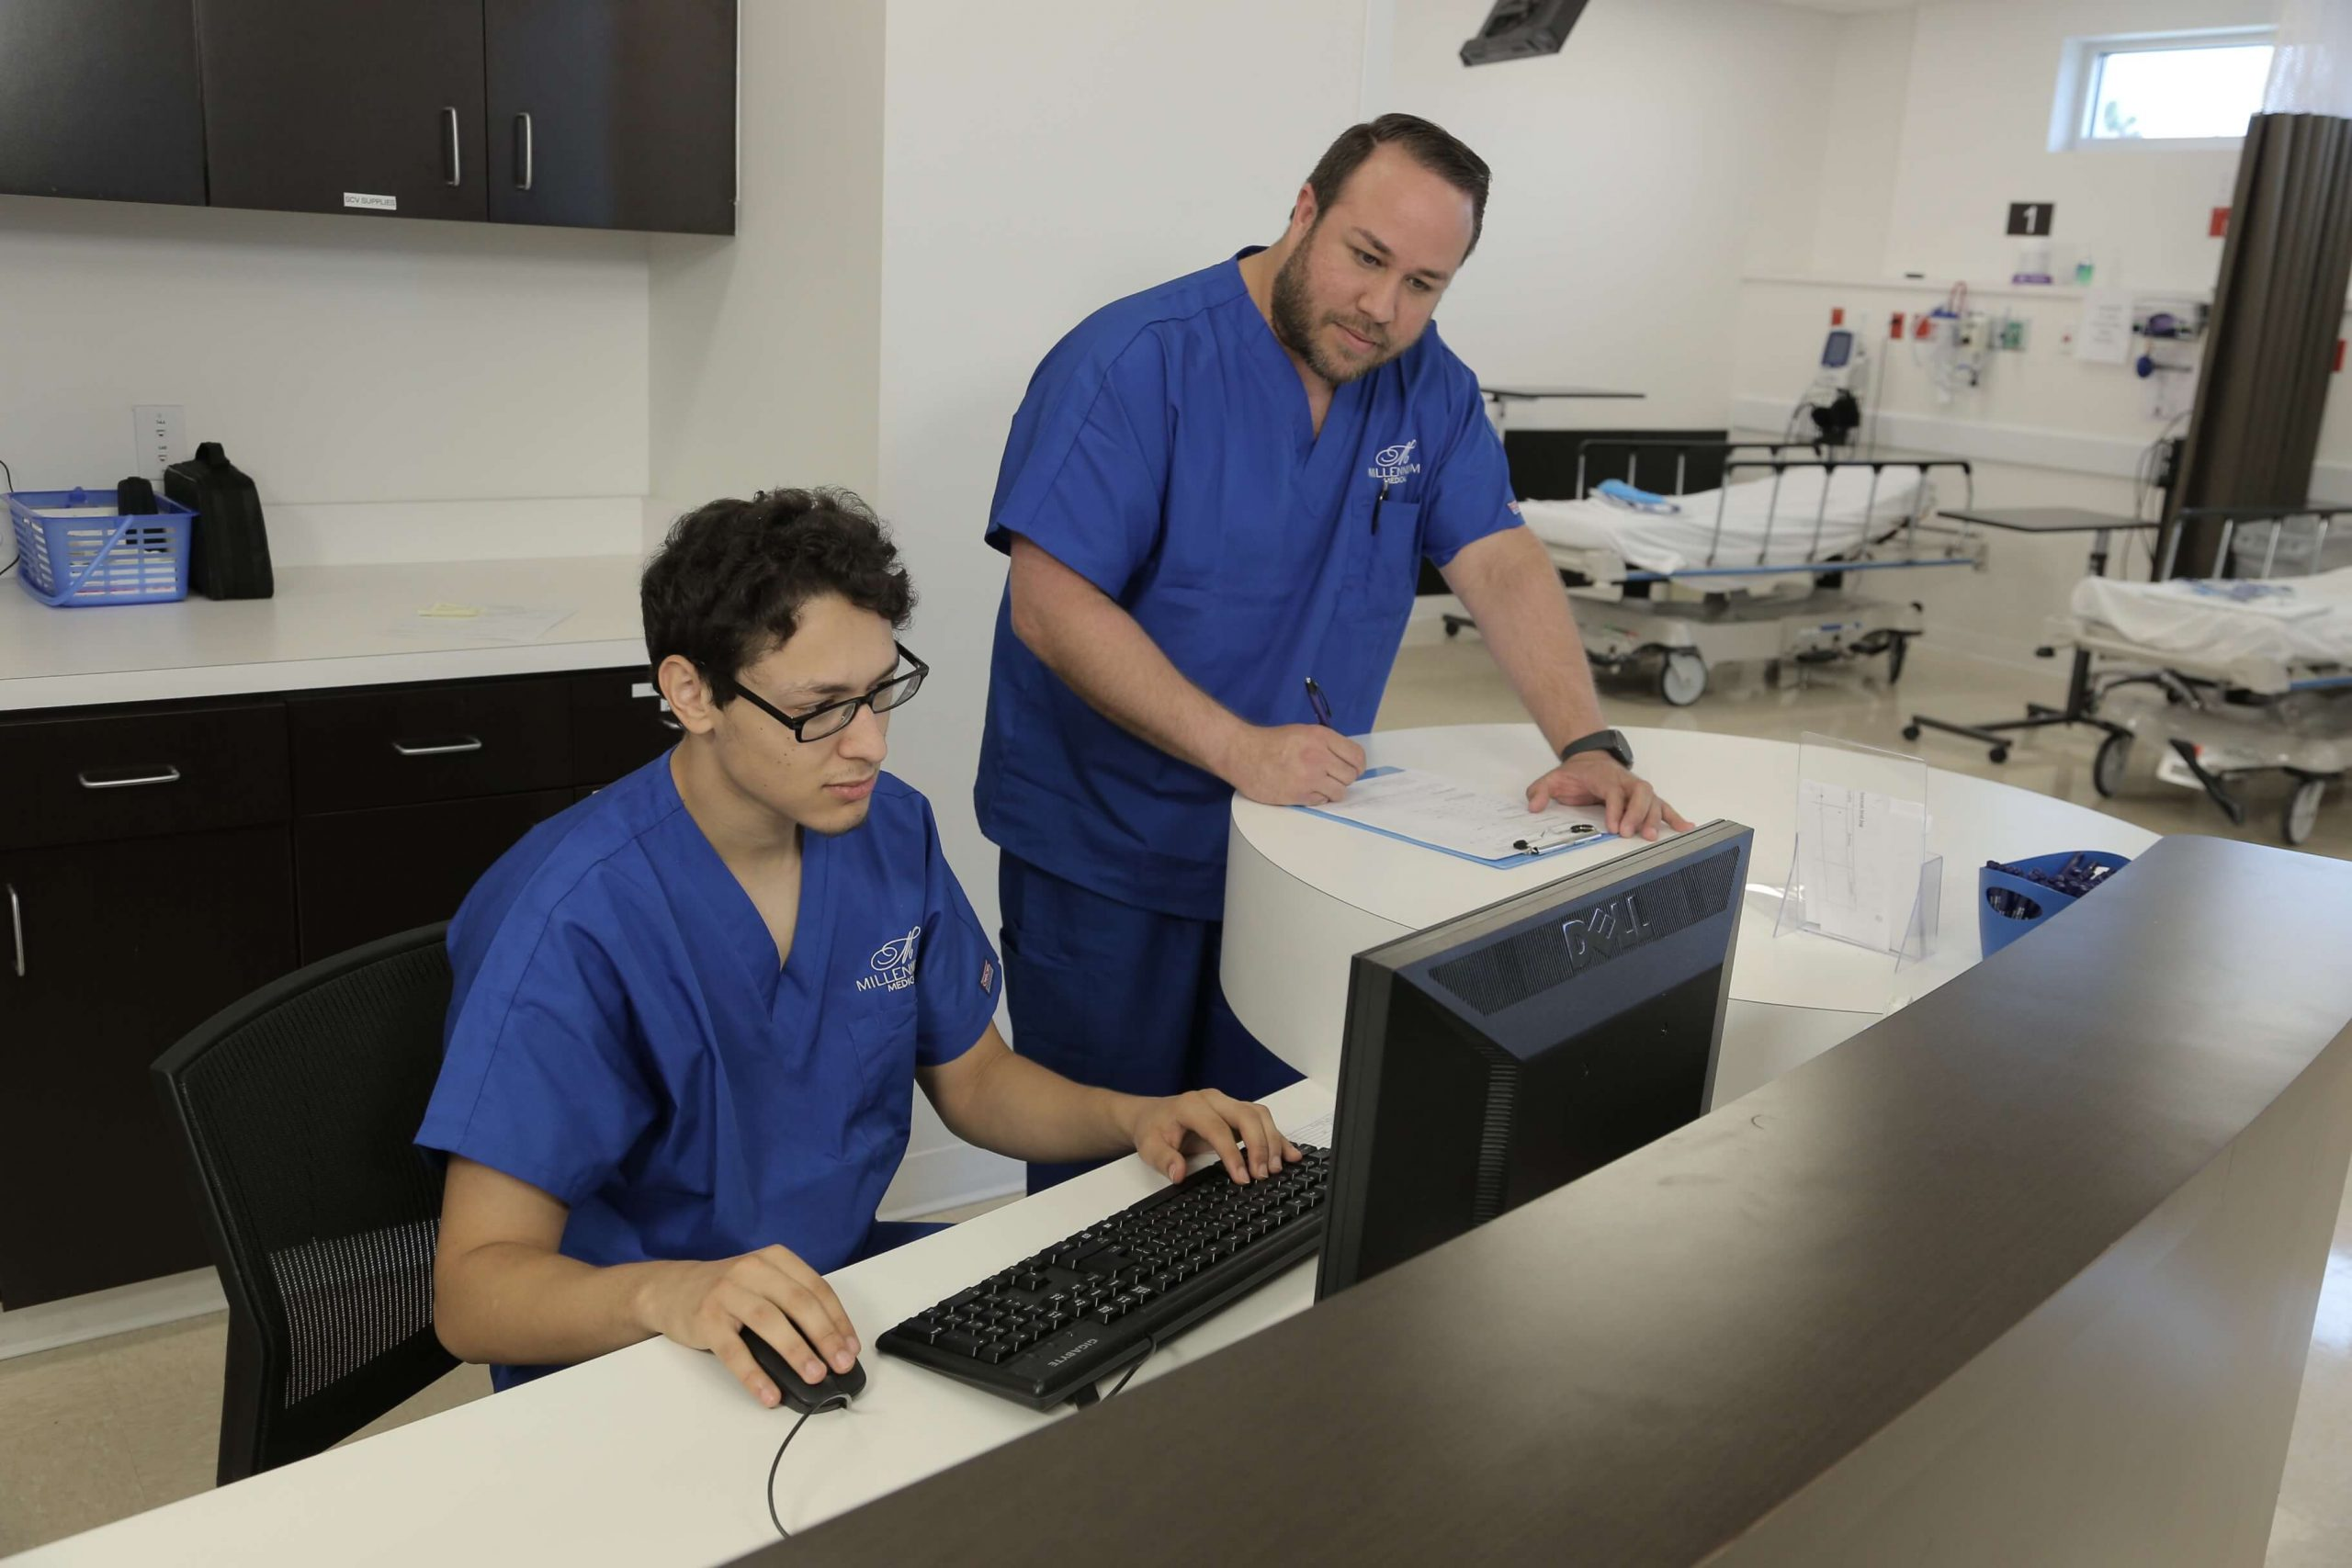 Physicians working on computer